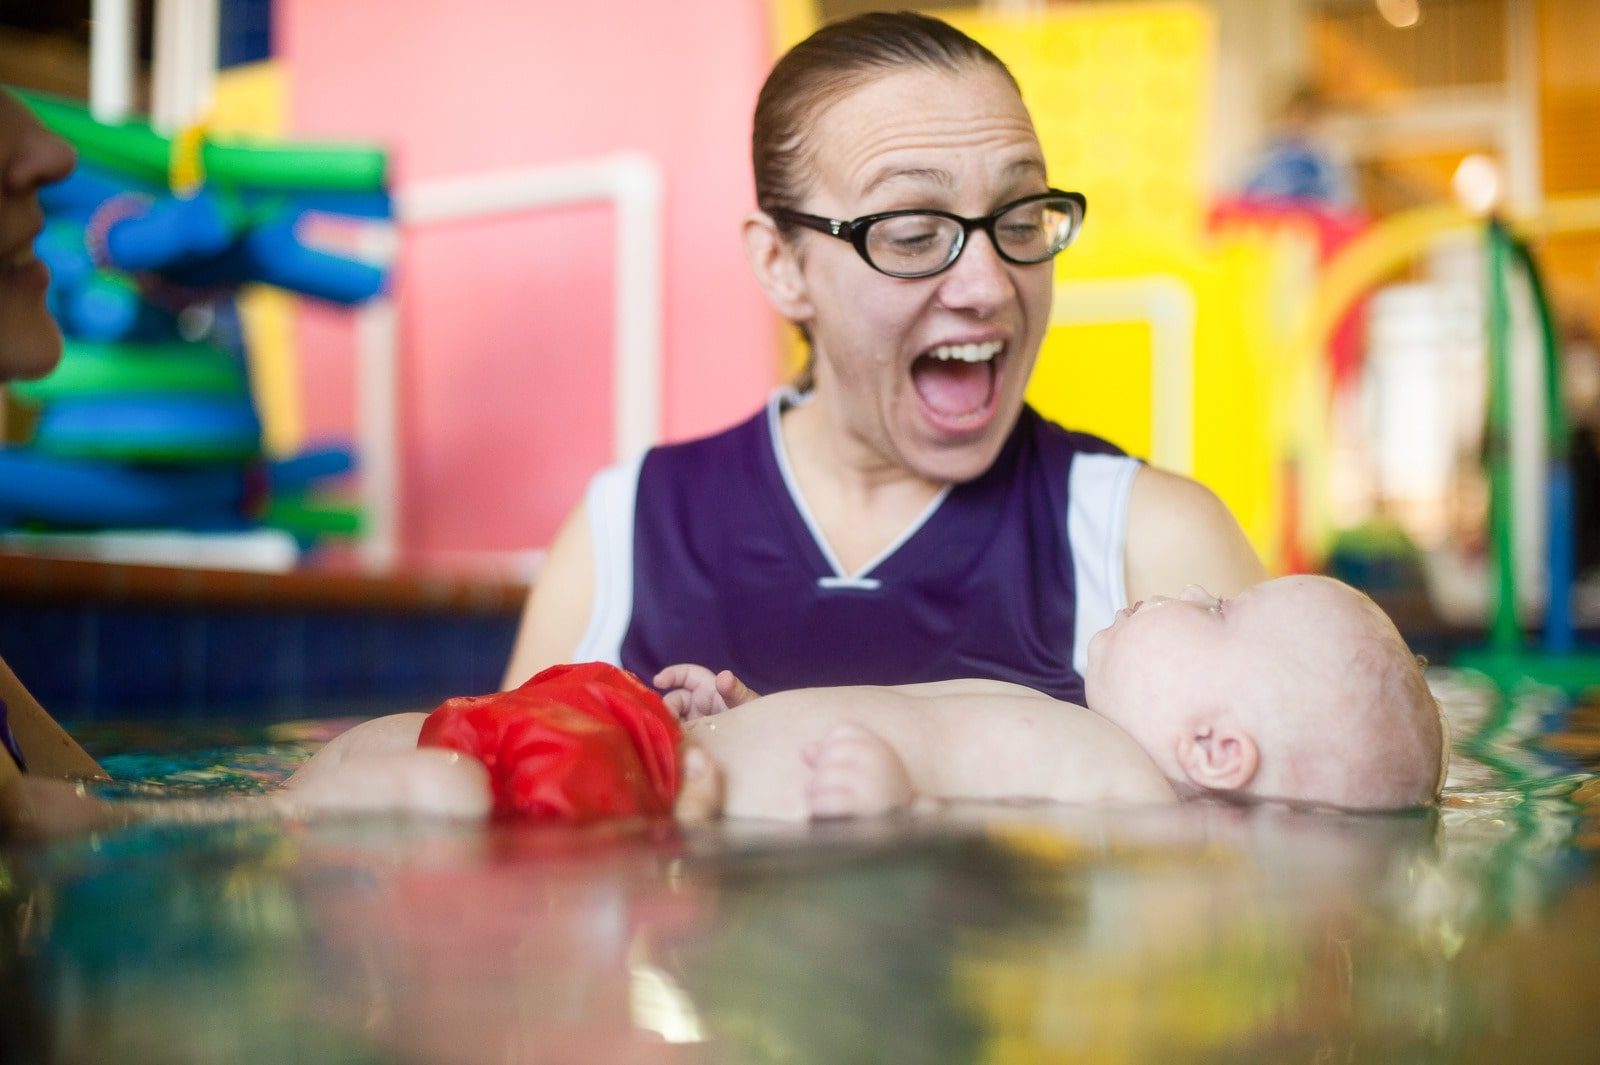 Instructor at best moms and babies winner Emler Swim School with infant student.